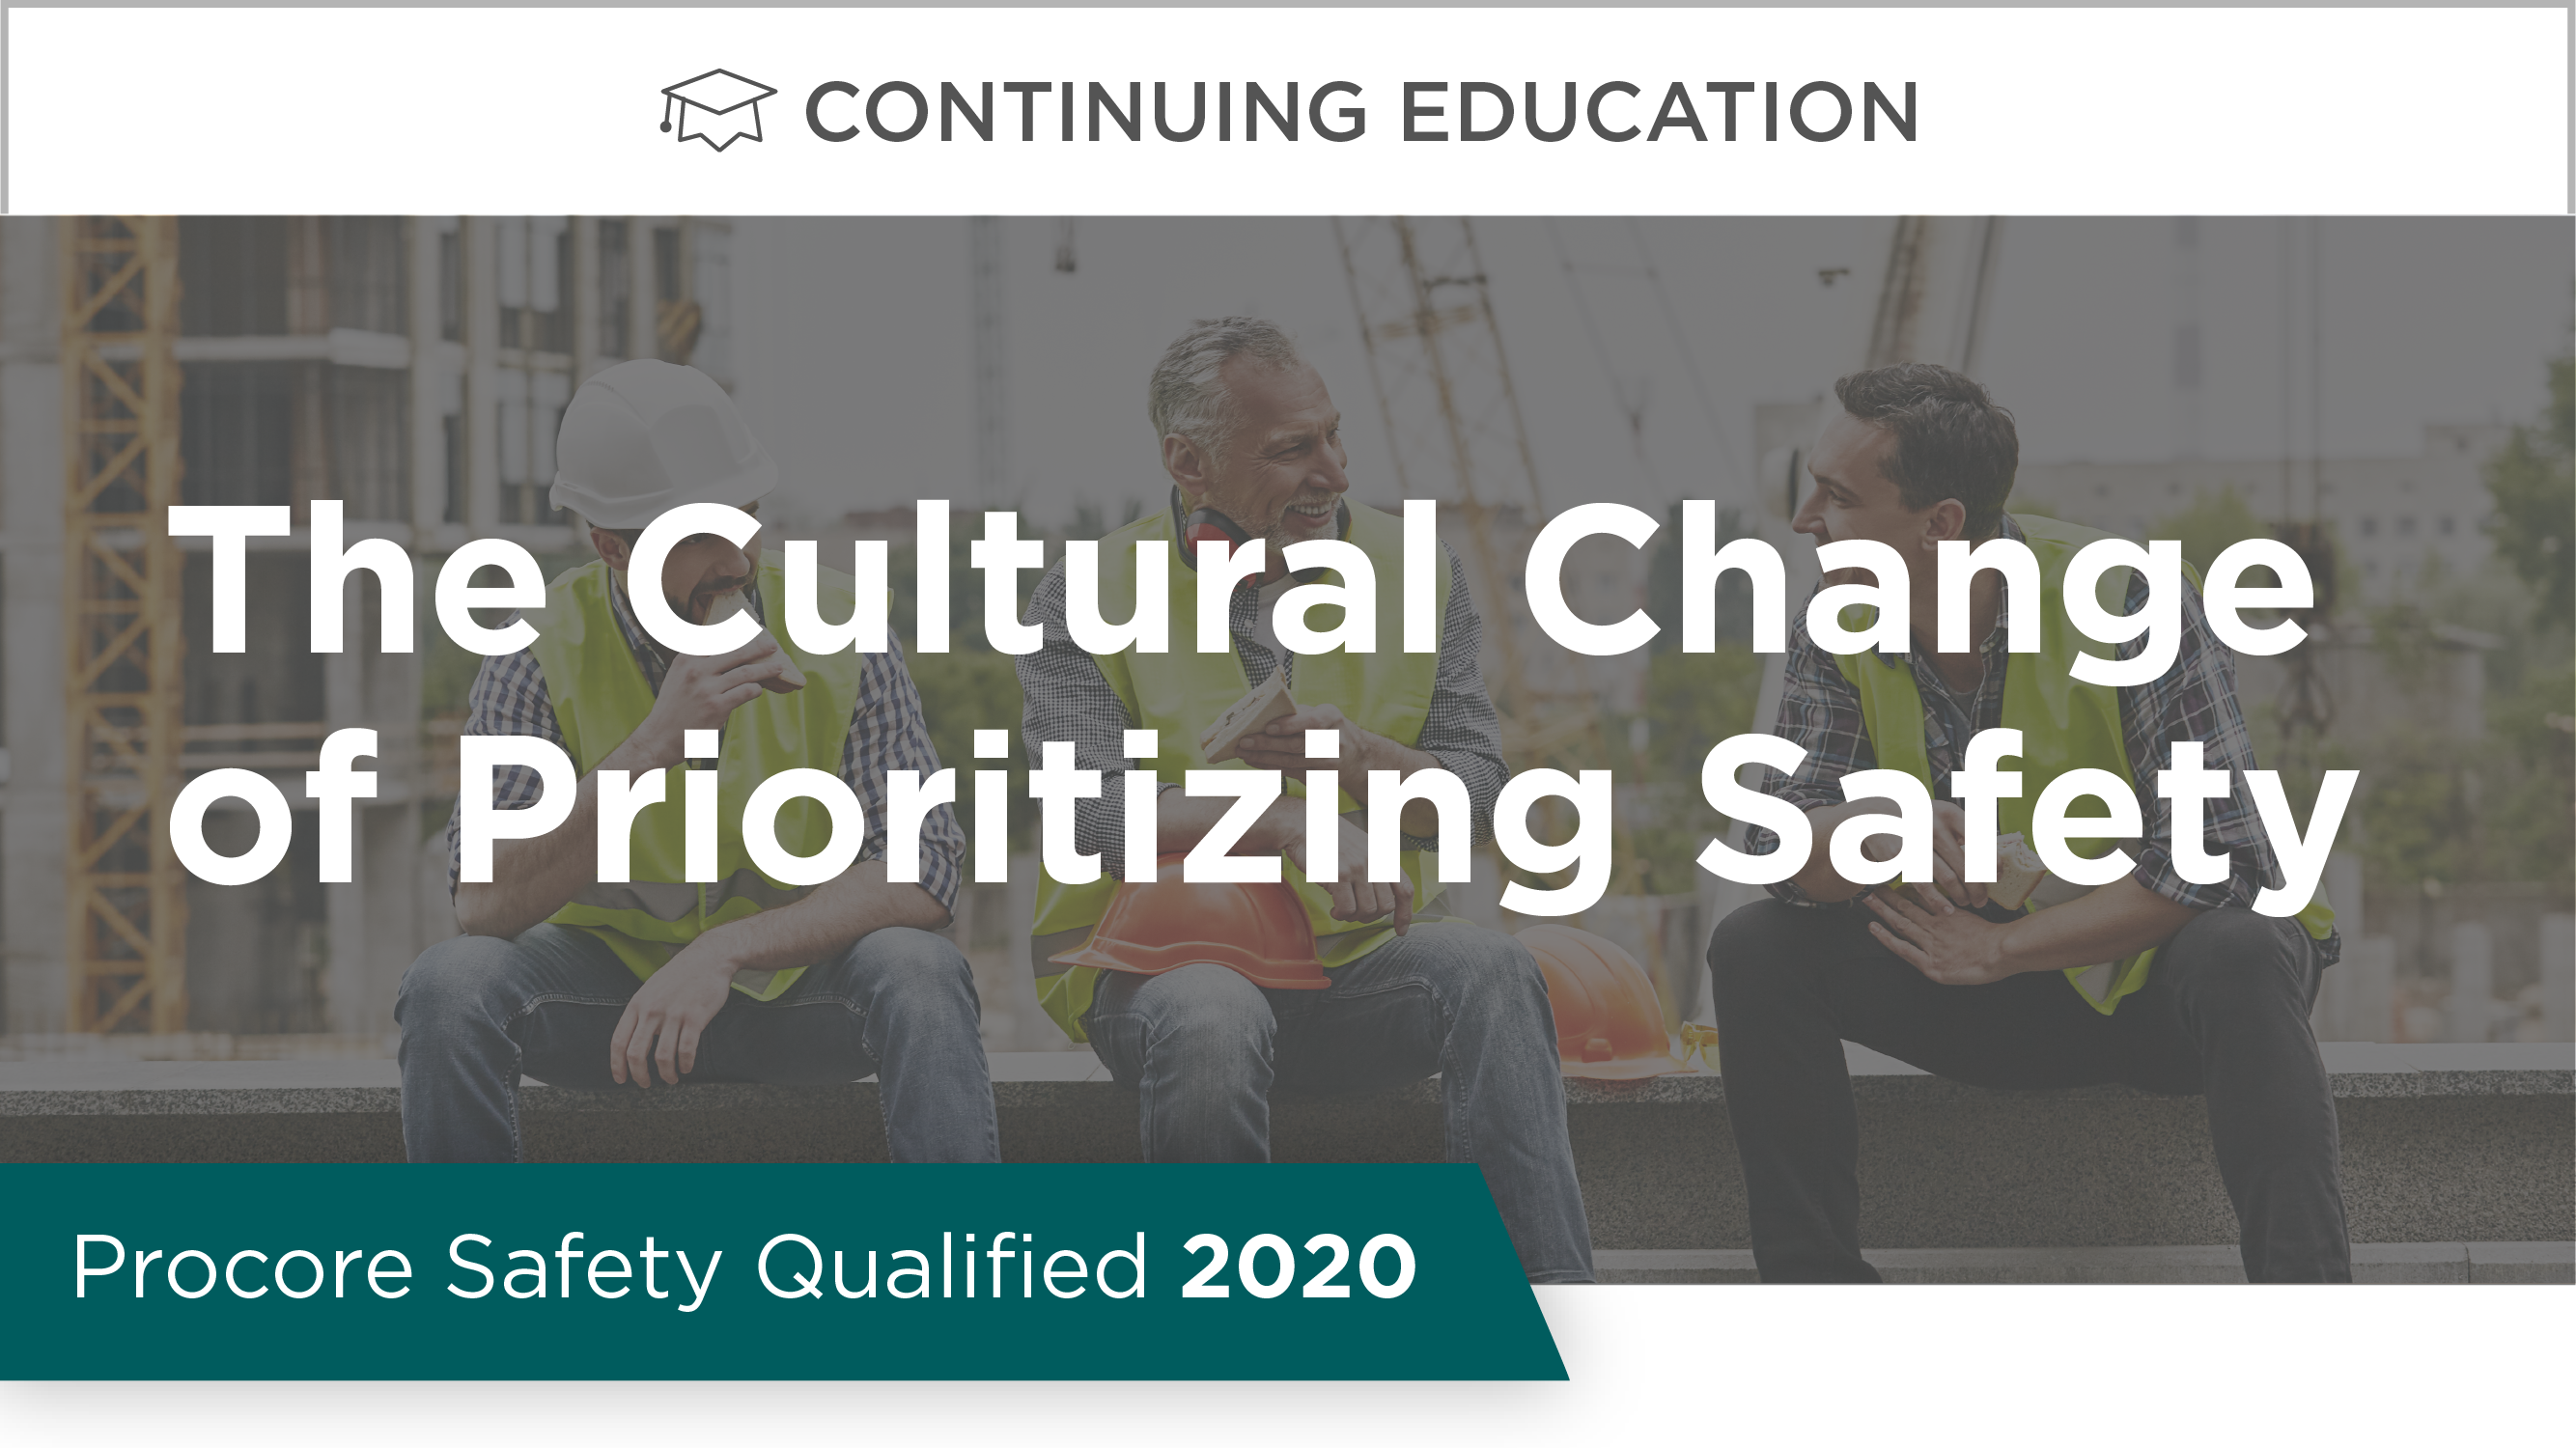 Procore Safety Qualified: The Cultural Change of Prioritizing Safety